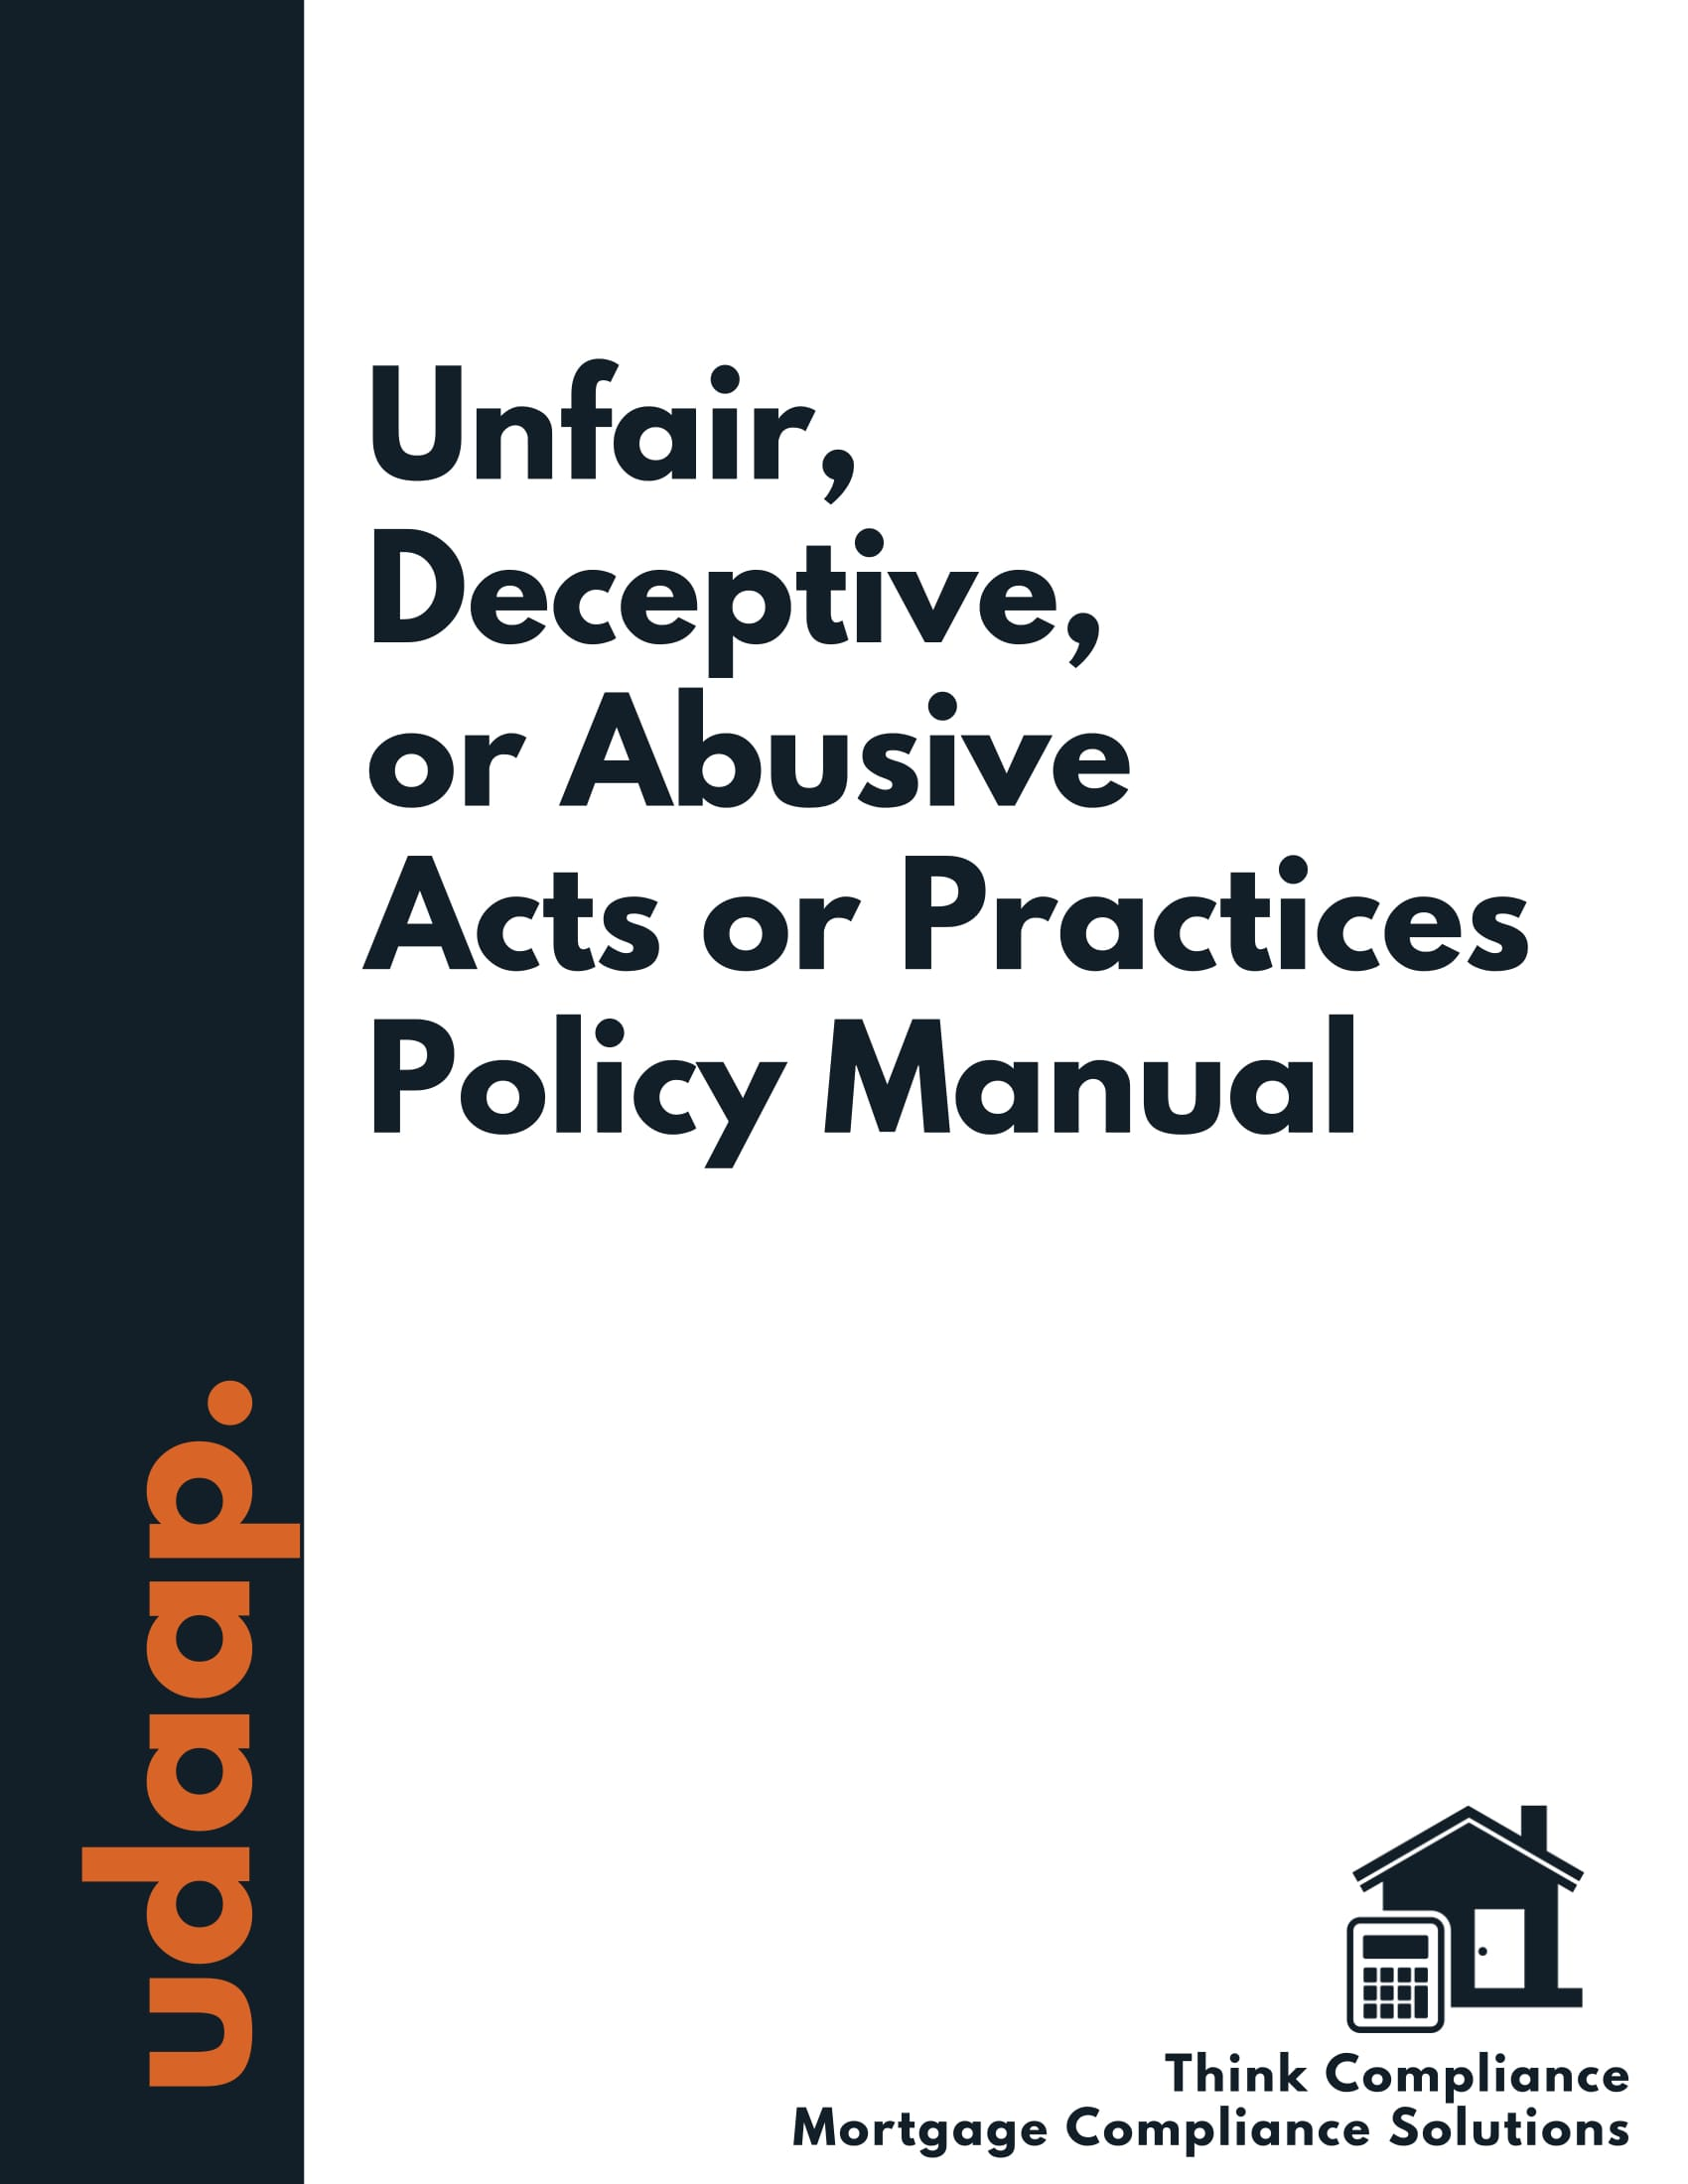 Mortgage UDAAP Policy Manual